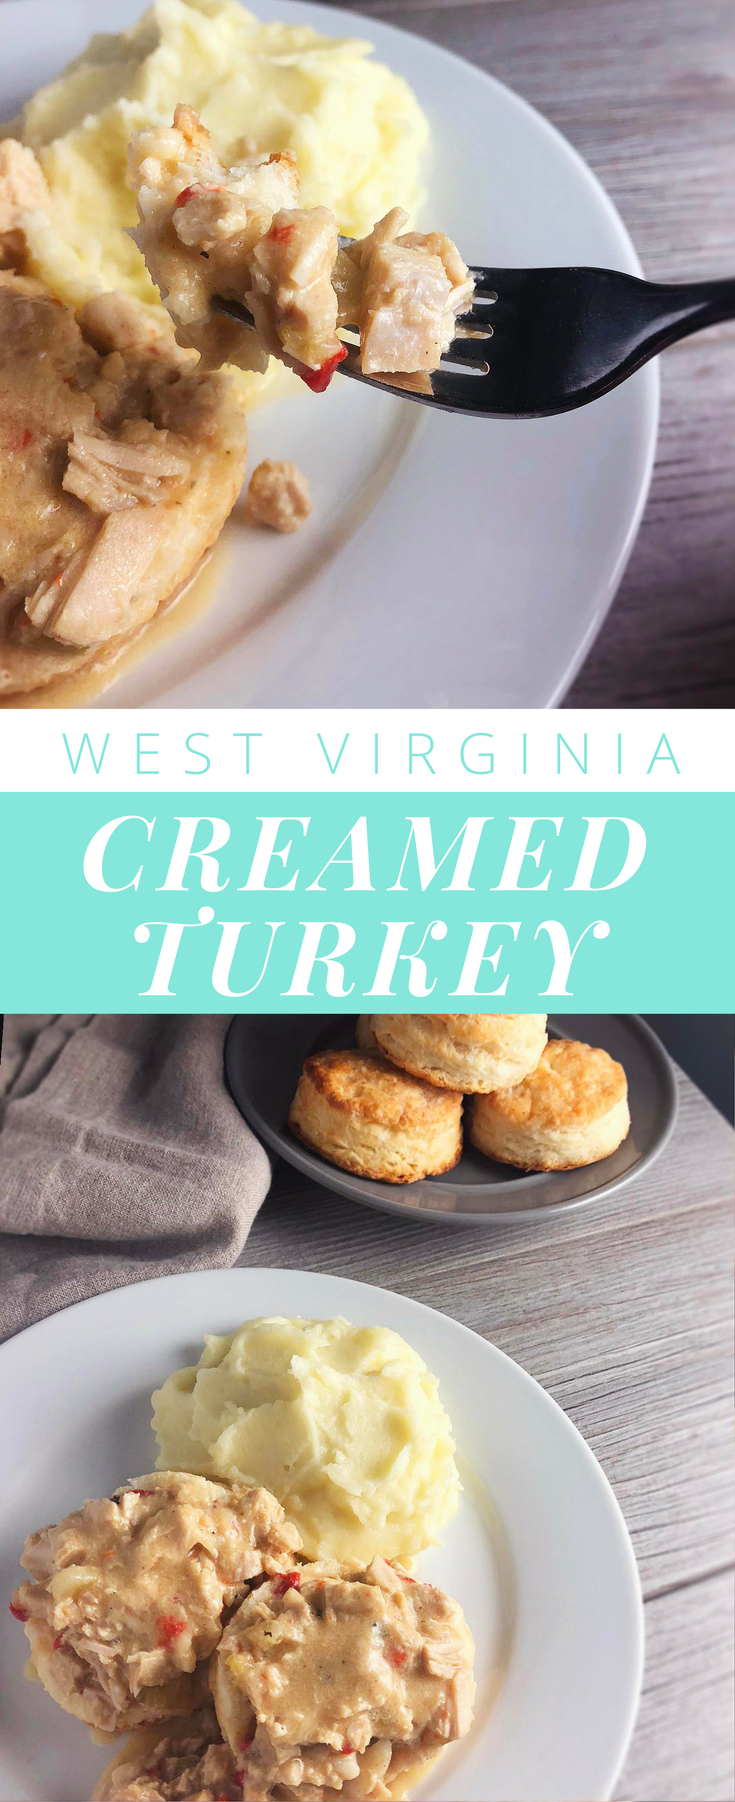 west-virginia-creamed-turkey.png